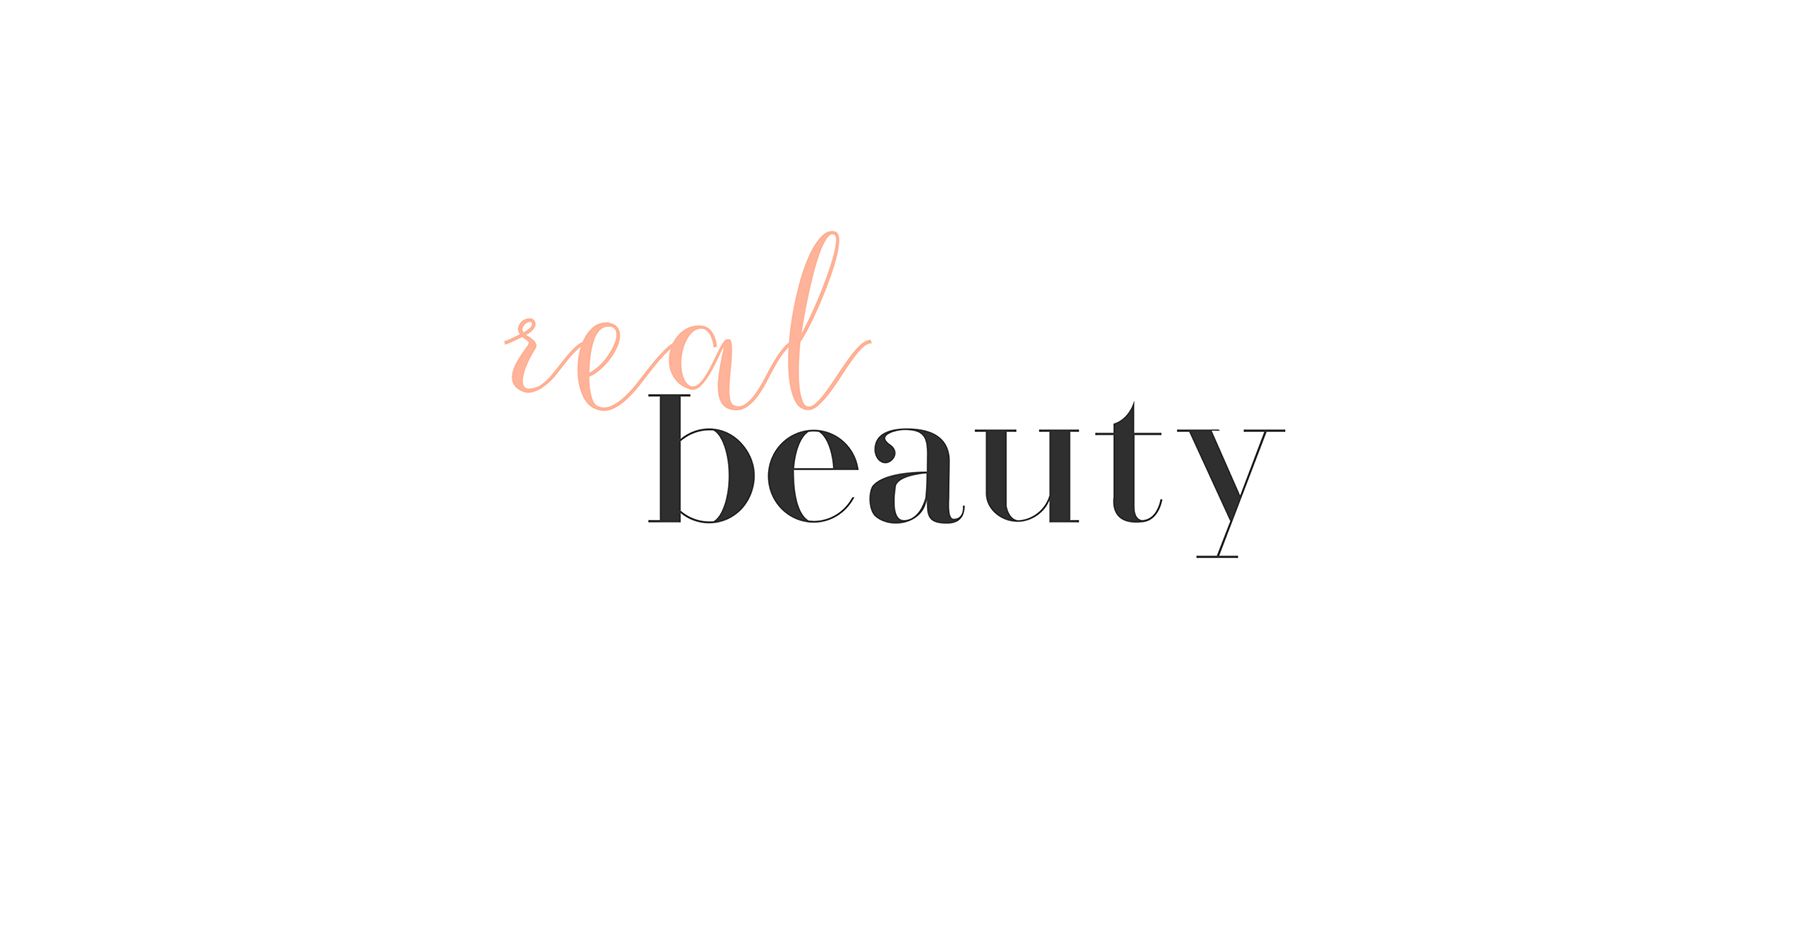 RealBeauty.png